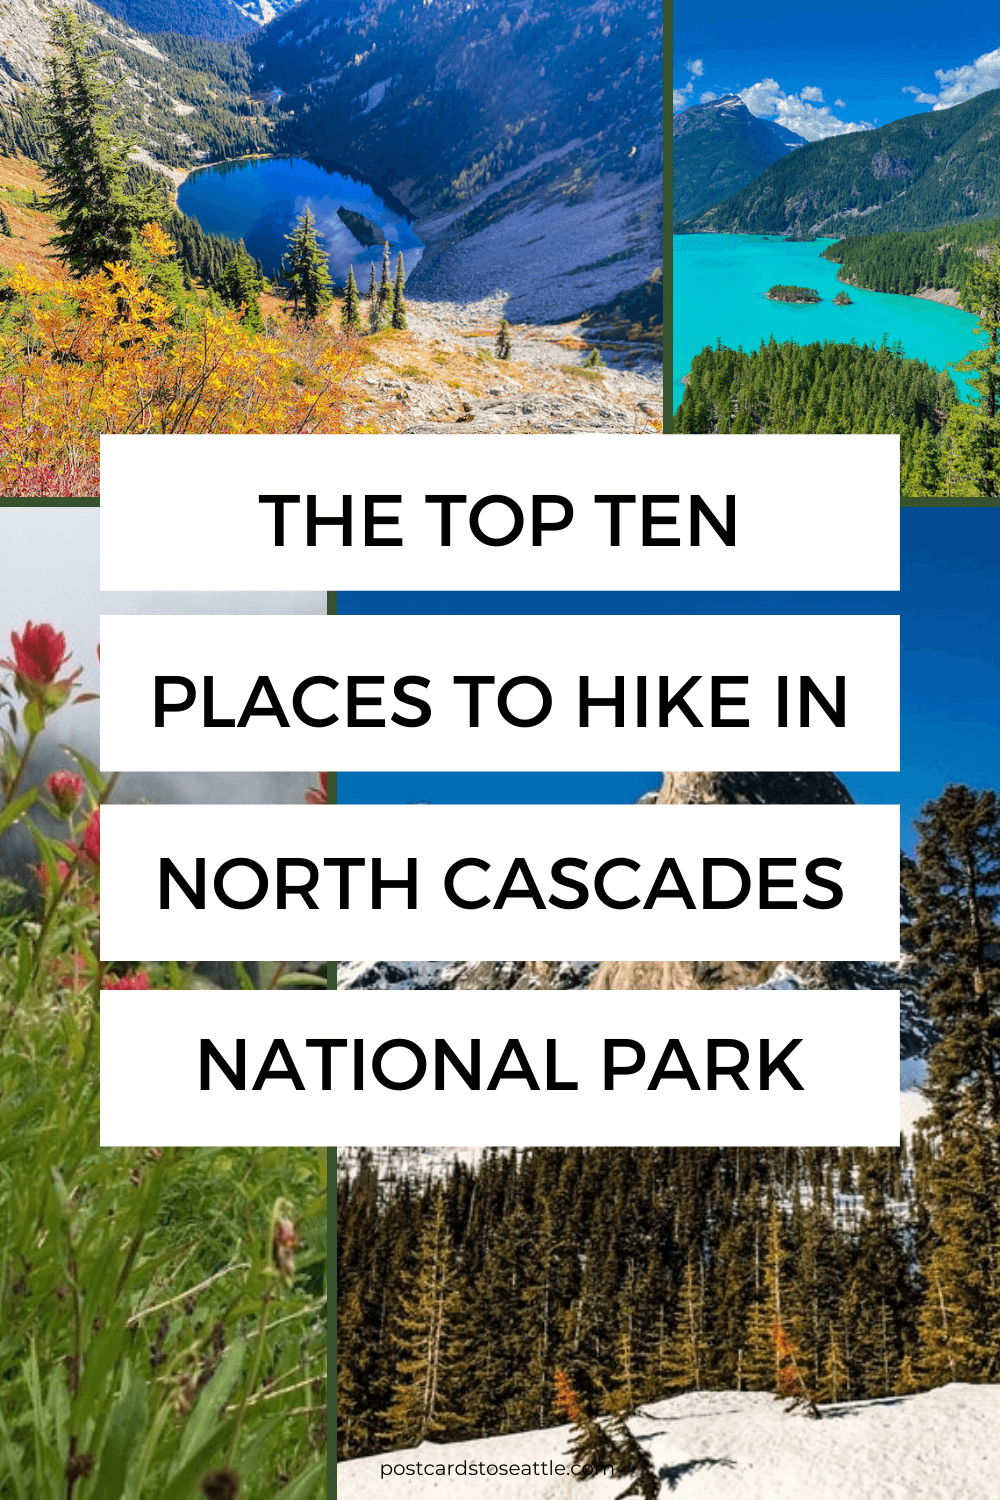 10 Best Hikes in North Cascades National Park to Explore